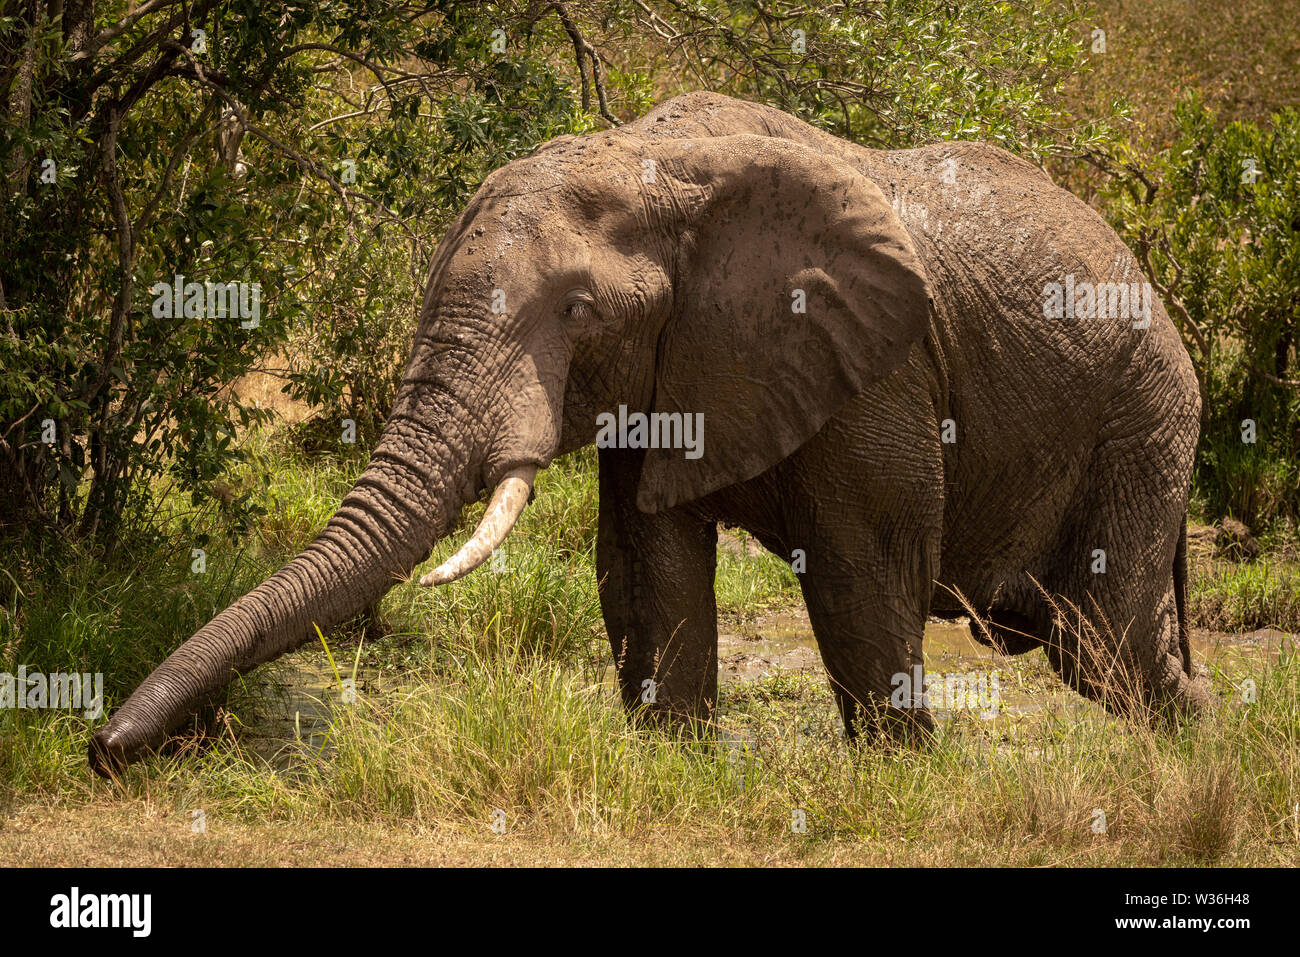 African bush elephant in mud stretching trunk - Stock Image